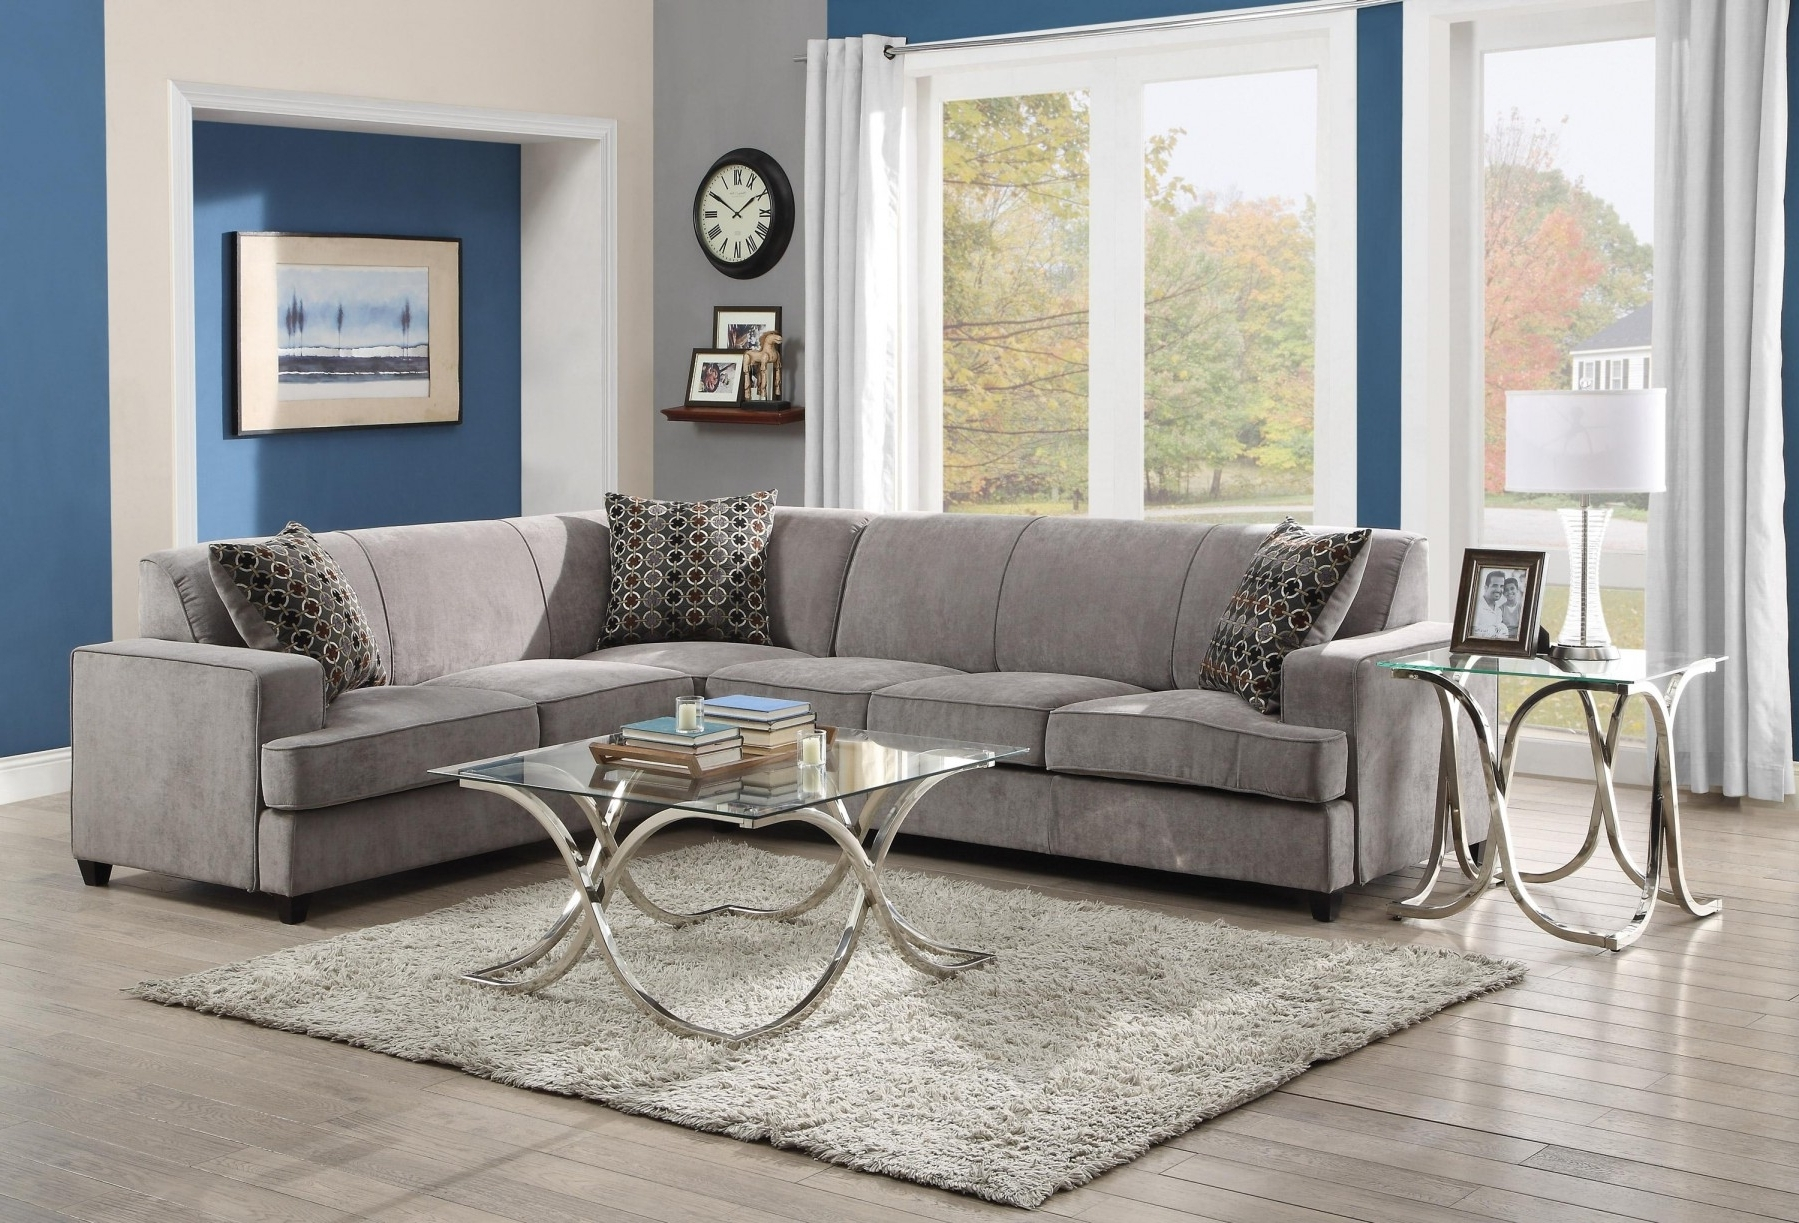 Trendy Long Sectional Sofas Plus Leather L Sofa Together With Designs Or With Regard To Velvet Sectional Sofas With Chaise (View 15 of 15)